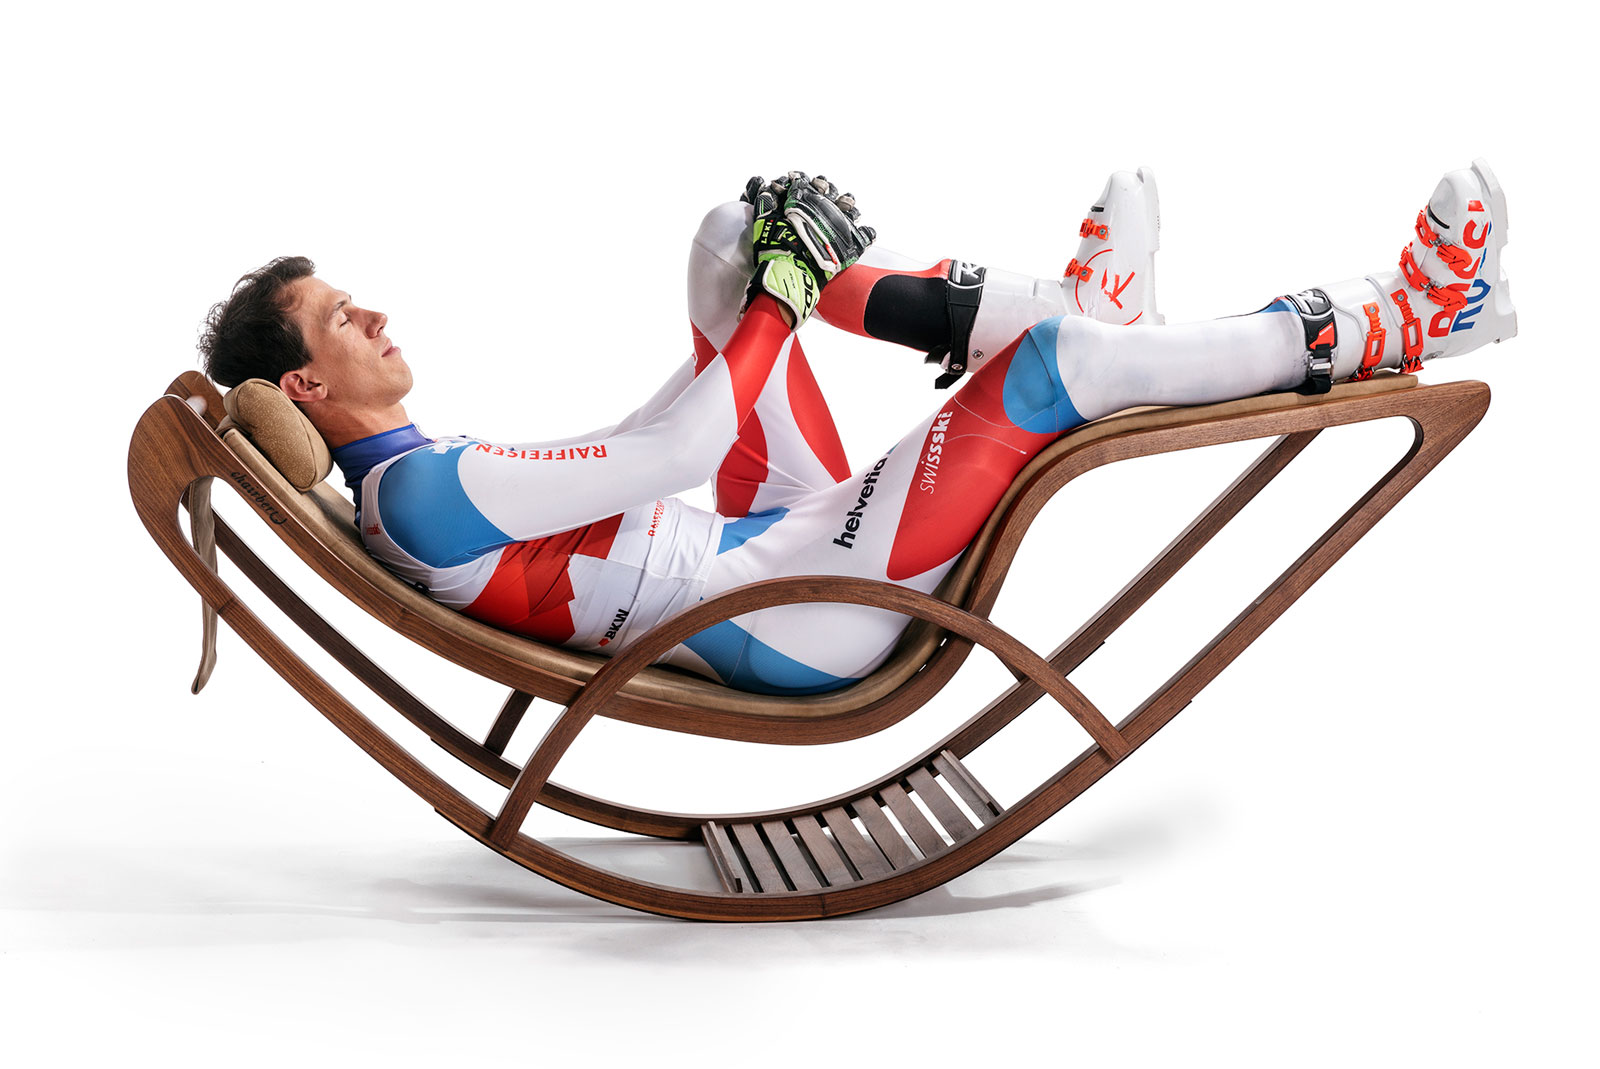 Champions-Lounger, recommended by Olympic Champion Ramon Zenhäusern, Switzerland